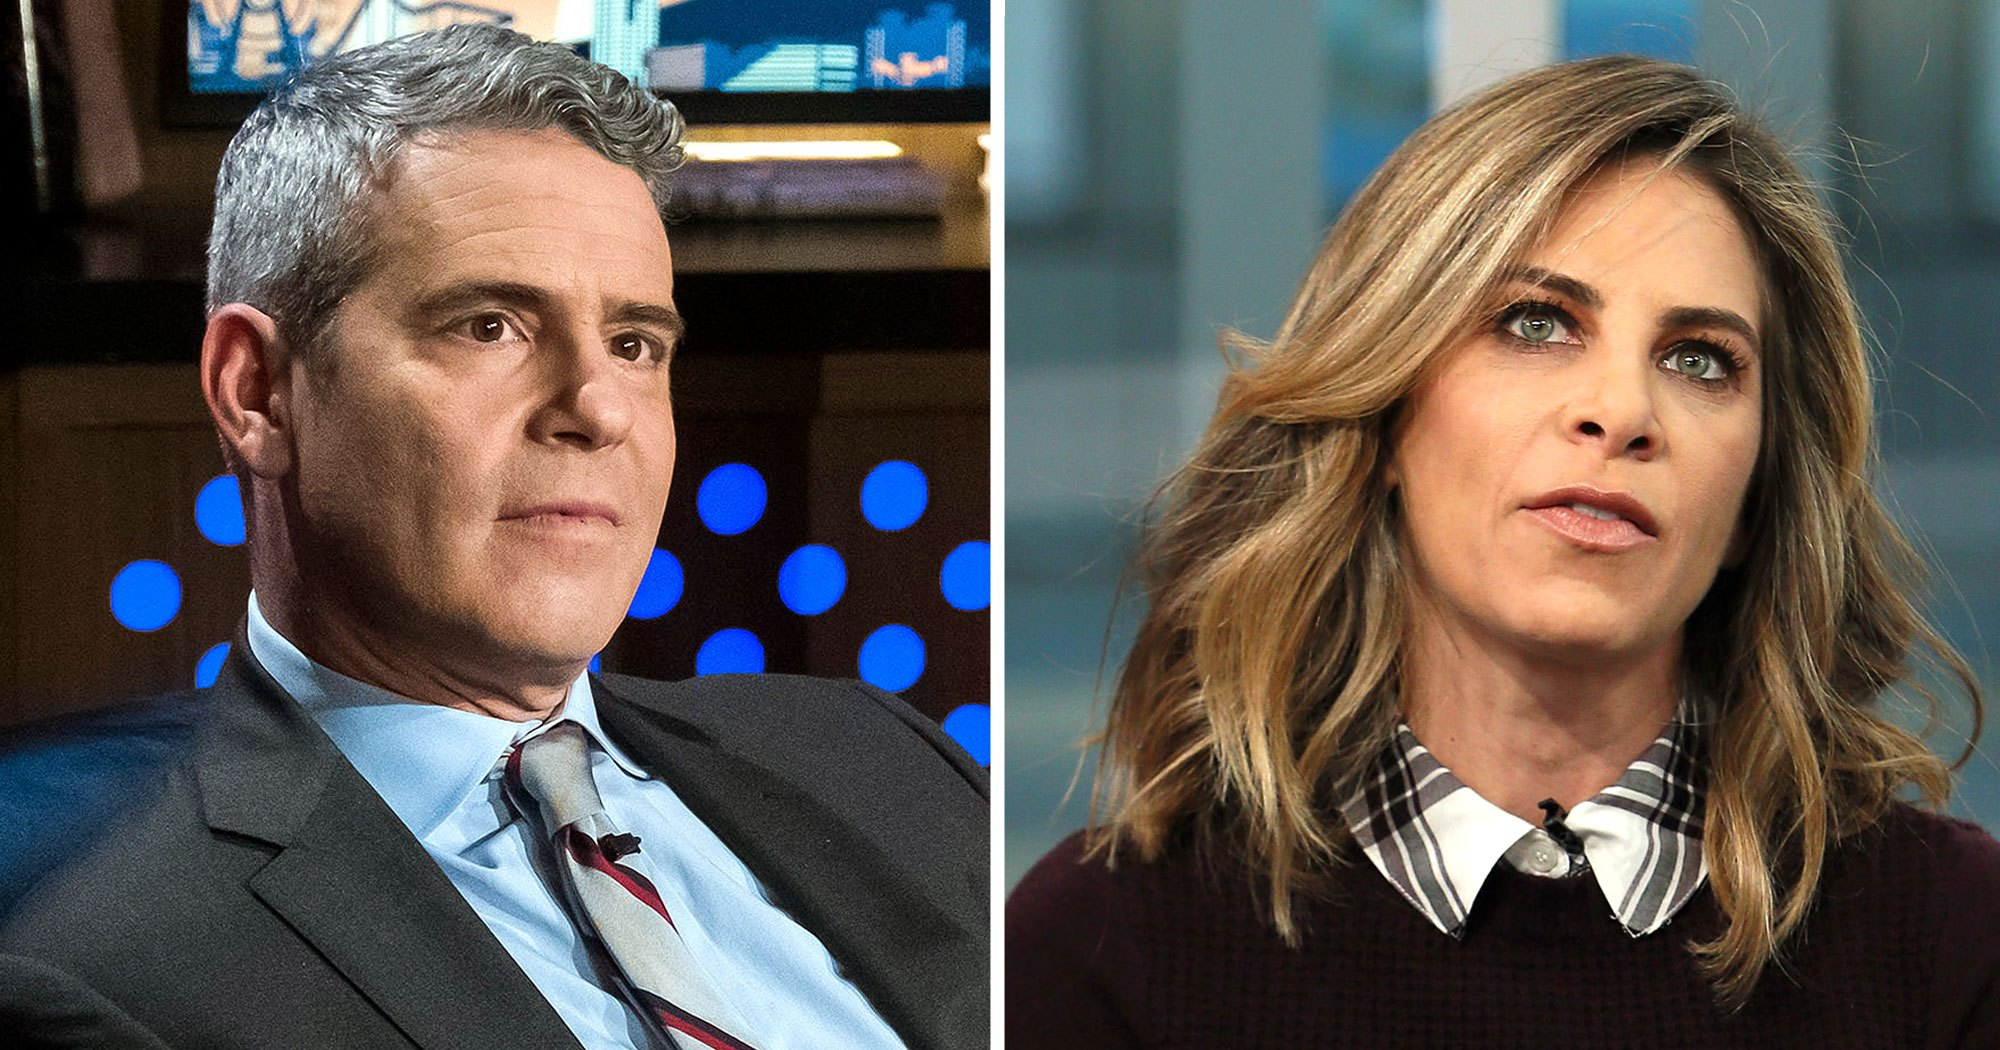 Jillian Michaels Recalls Her 'Hideous Experience' With 'Extremely Rude and Condescending' Andy Cohen